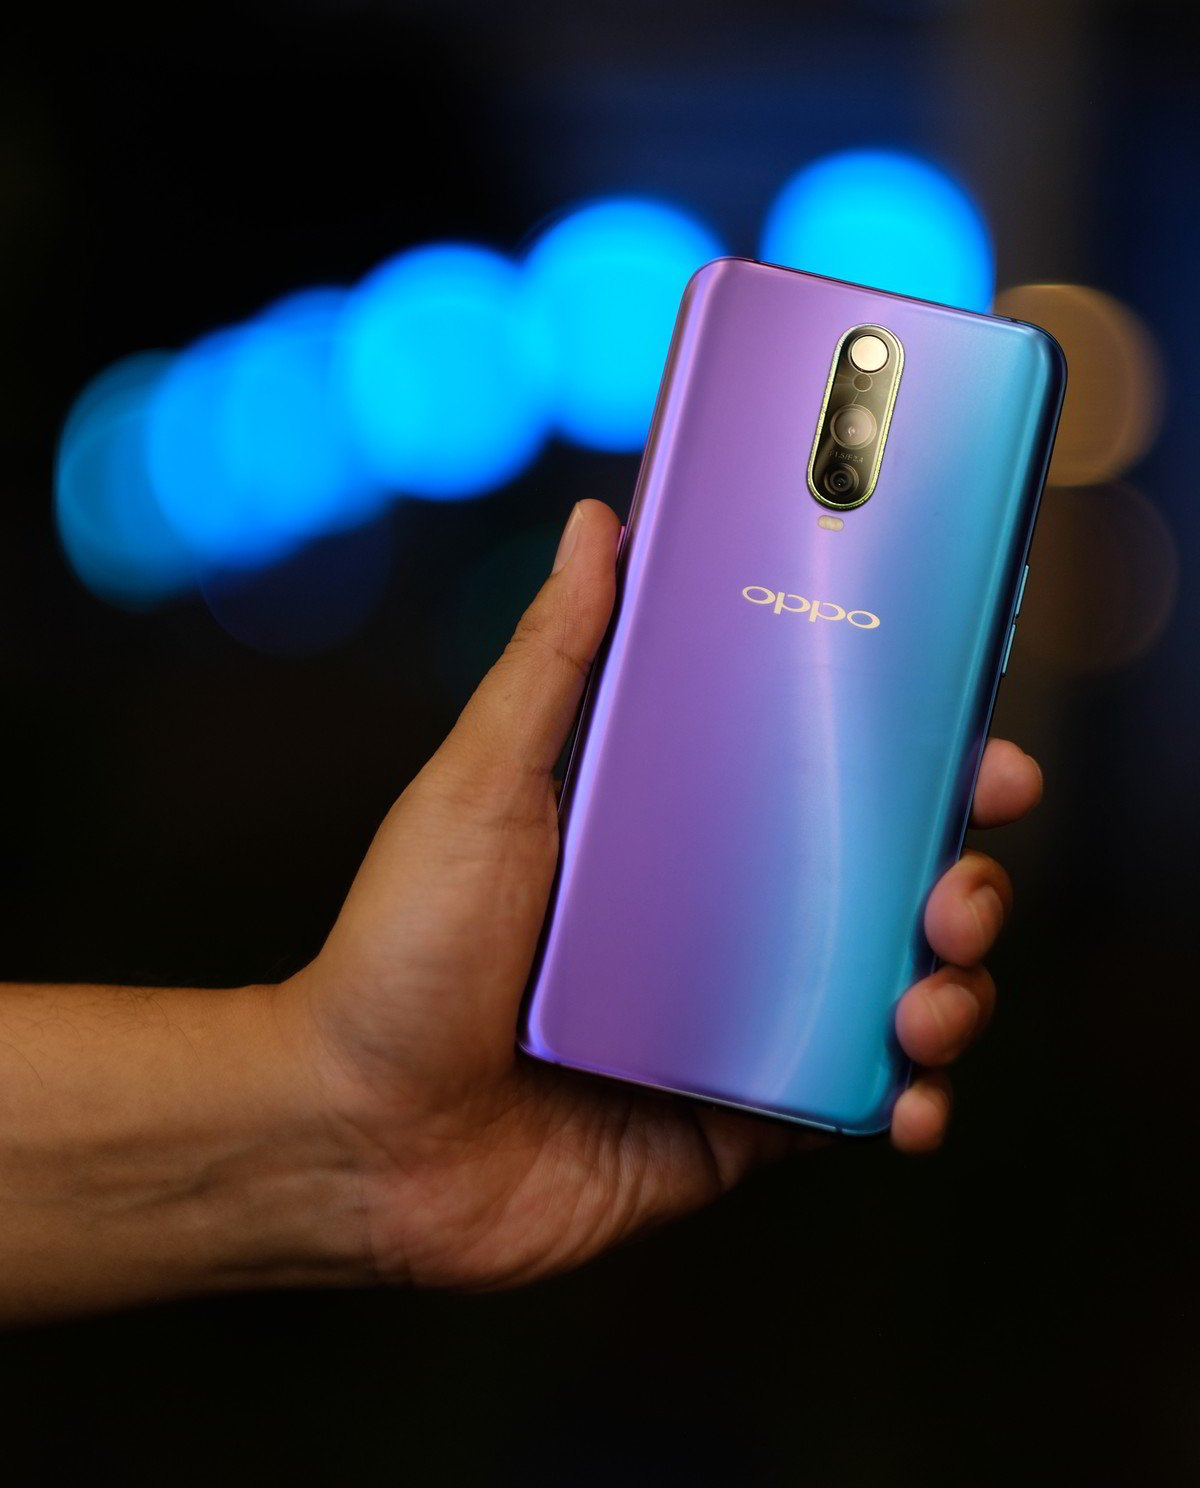 [Tips] Cara Update ColorOS 7 Berbasis Android 10 di OPPO Find X dan R17 Pro 2 android, Android 10, ColorOS 7, OPPI Find X, oppo, Oppo R17 Pro